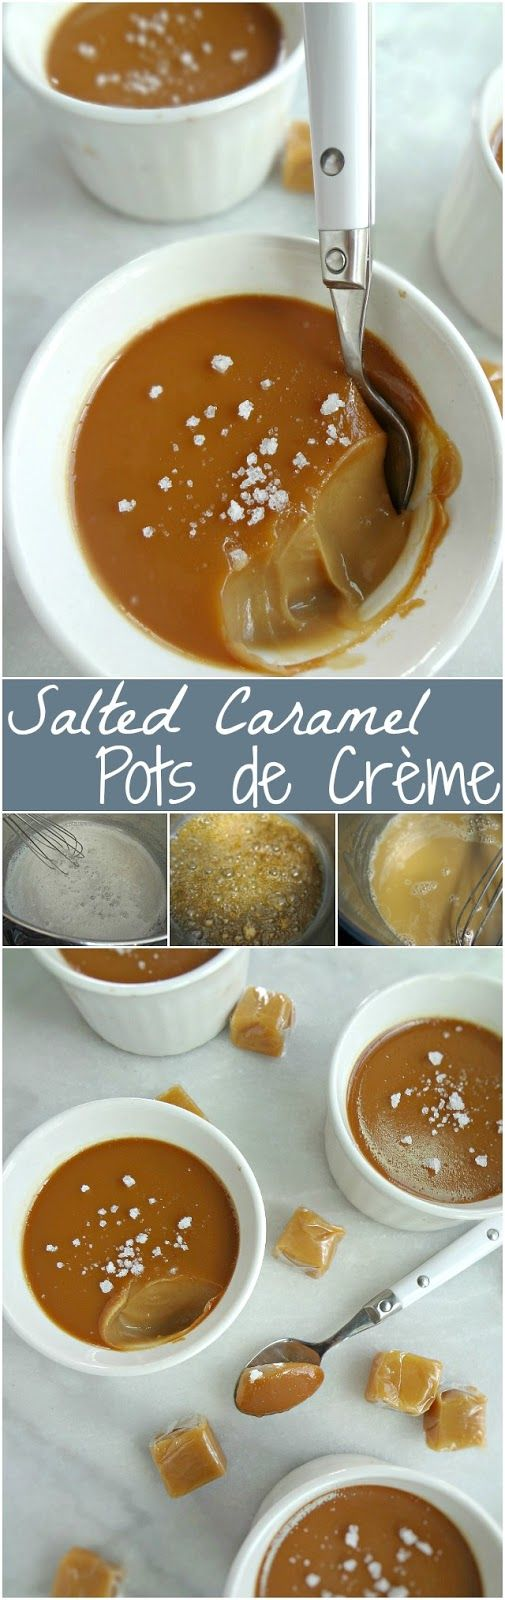 Salted Caramel Pots de Crème-decadent desserts that are creamy and dreamy and perfect for entertaining.